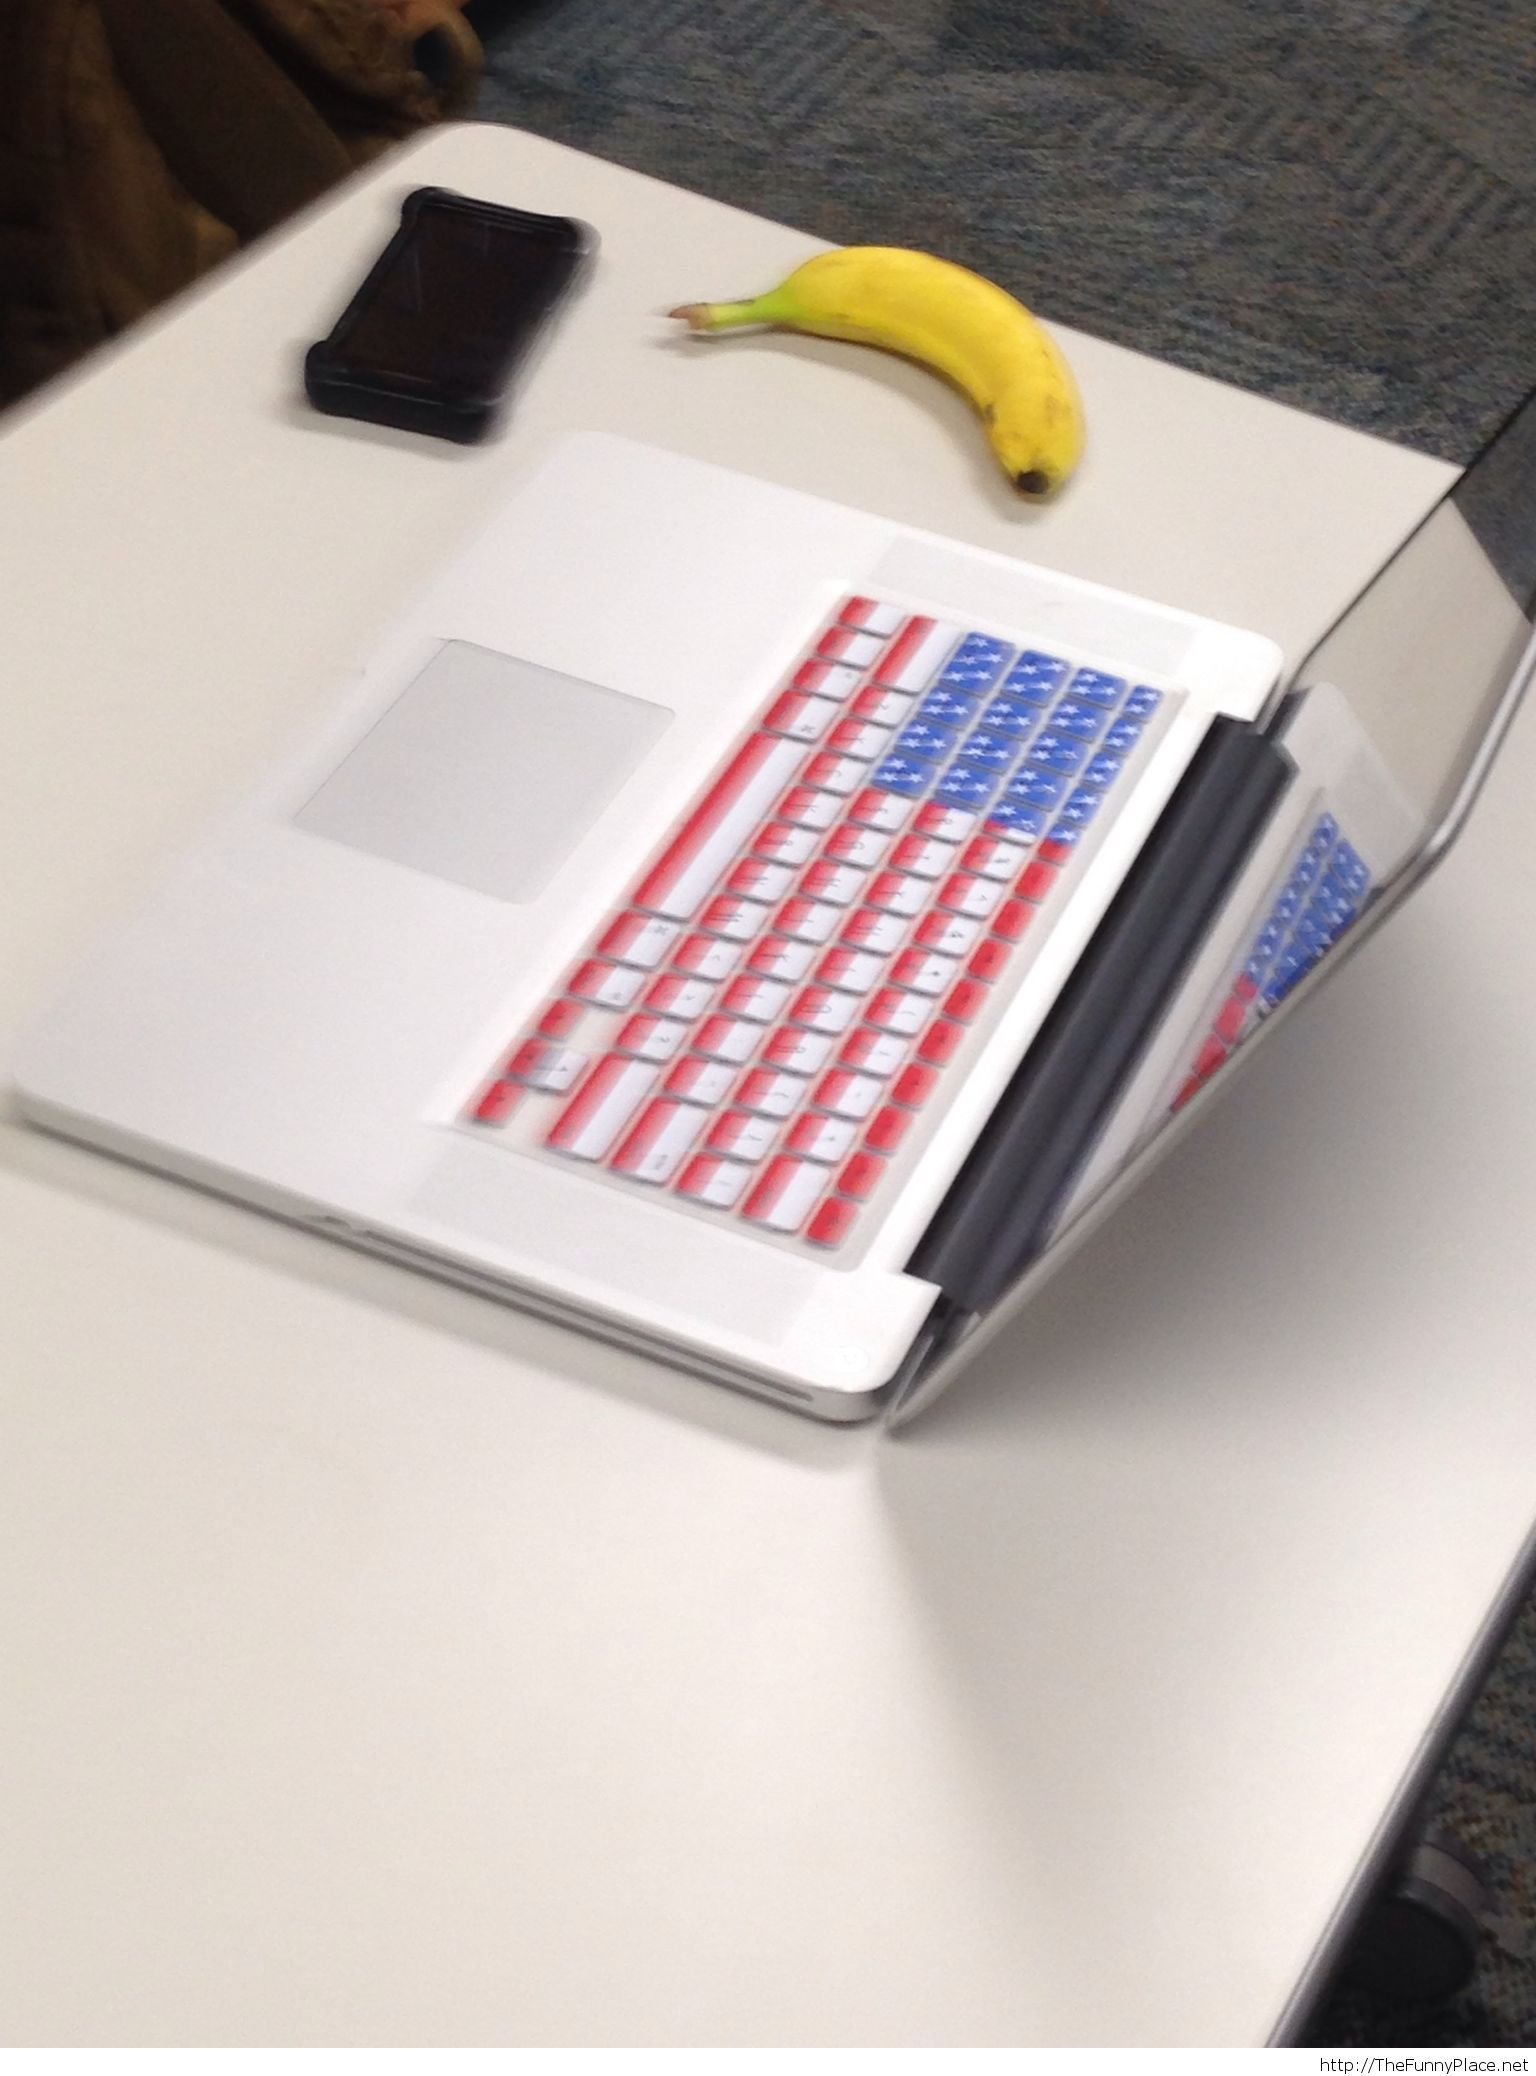 Proper way to type 'Murica